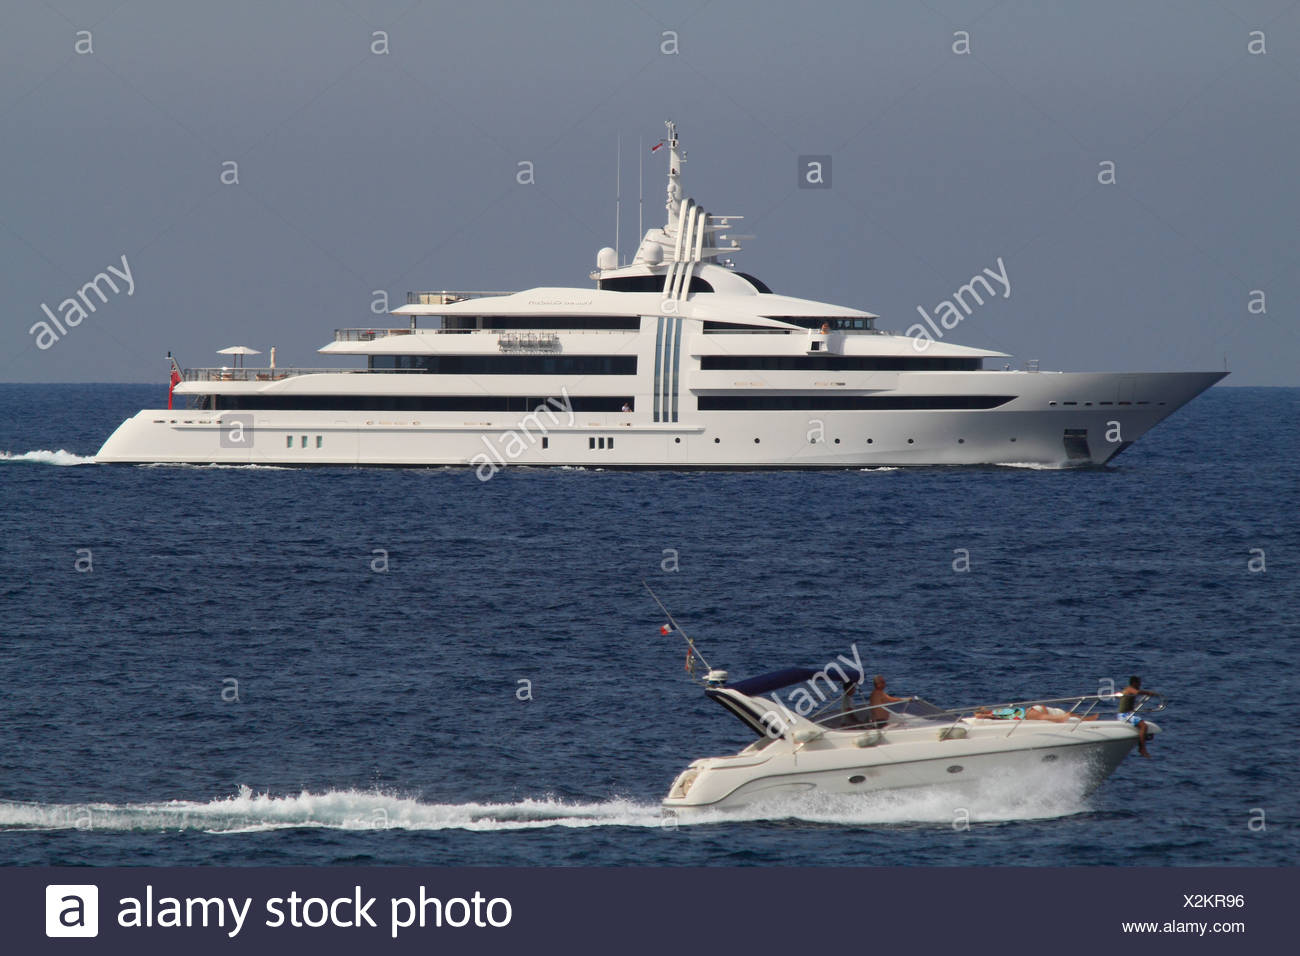 Vibrant Curiosity, a cruiser built by Oceanco, length: 85.47 meters, built in 2009, French Riviera, France, Mediterranean Sea - Stock Image